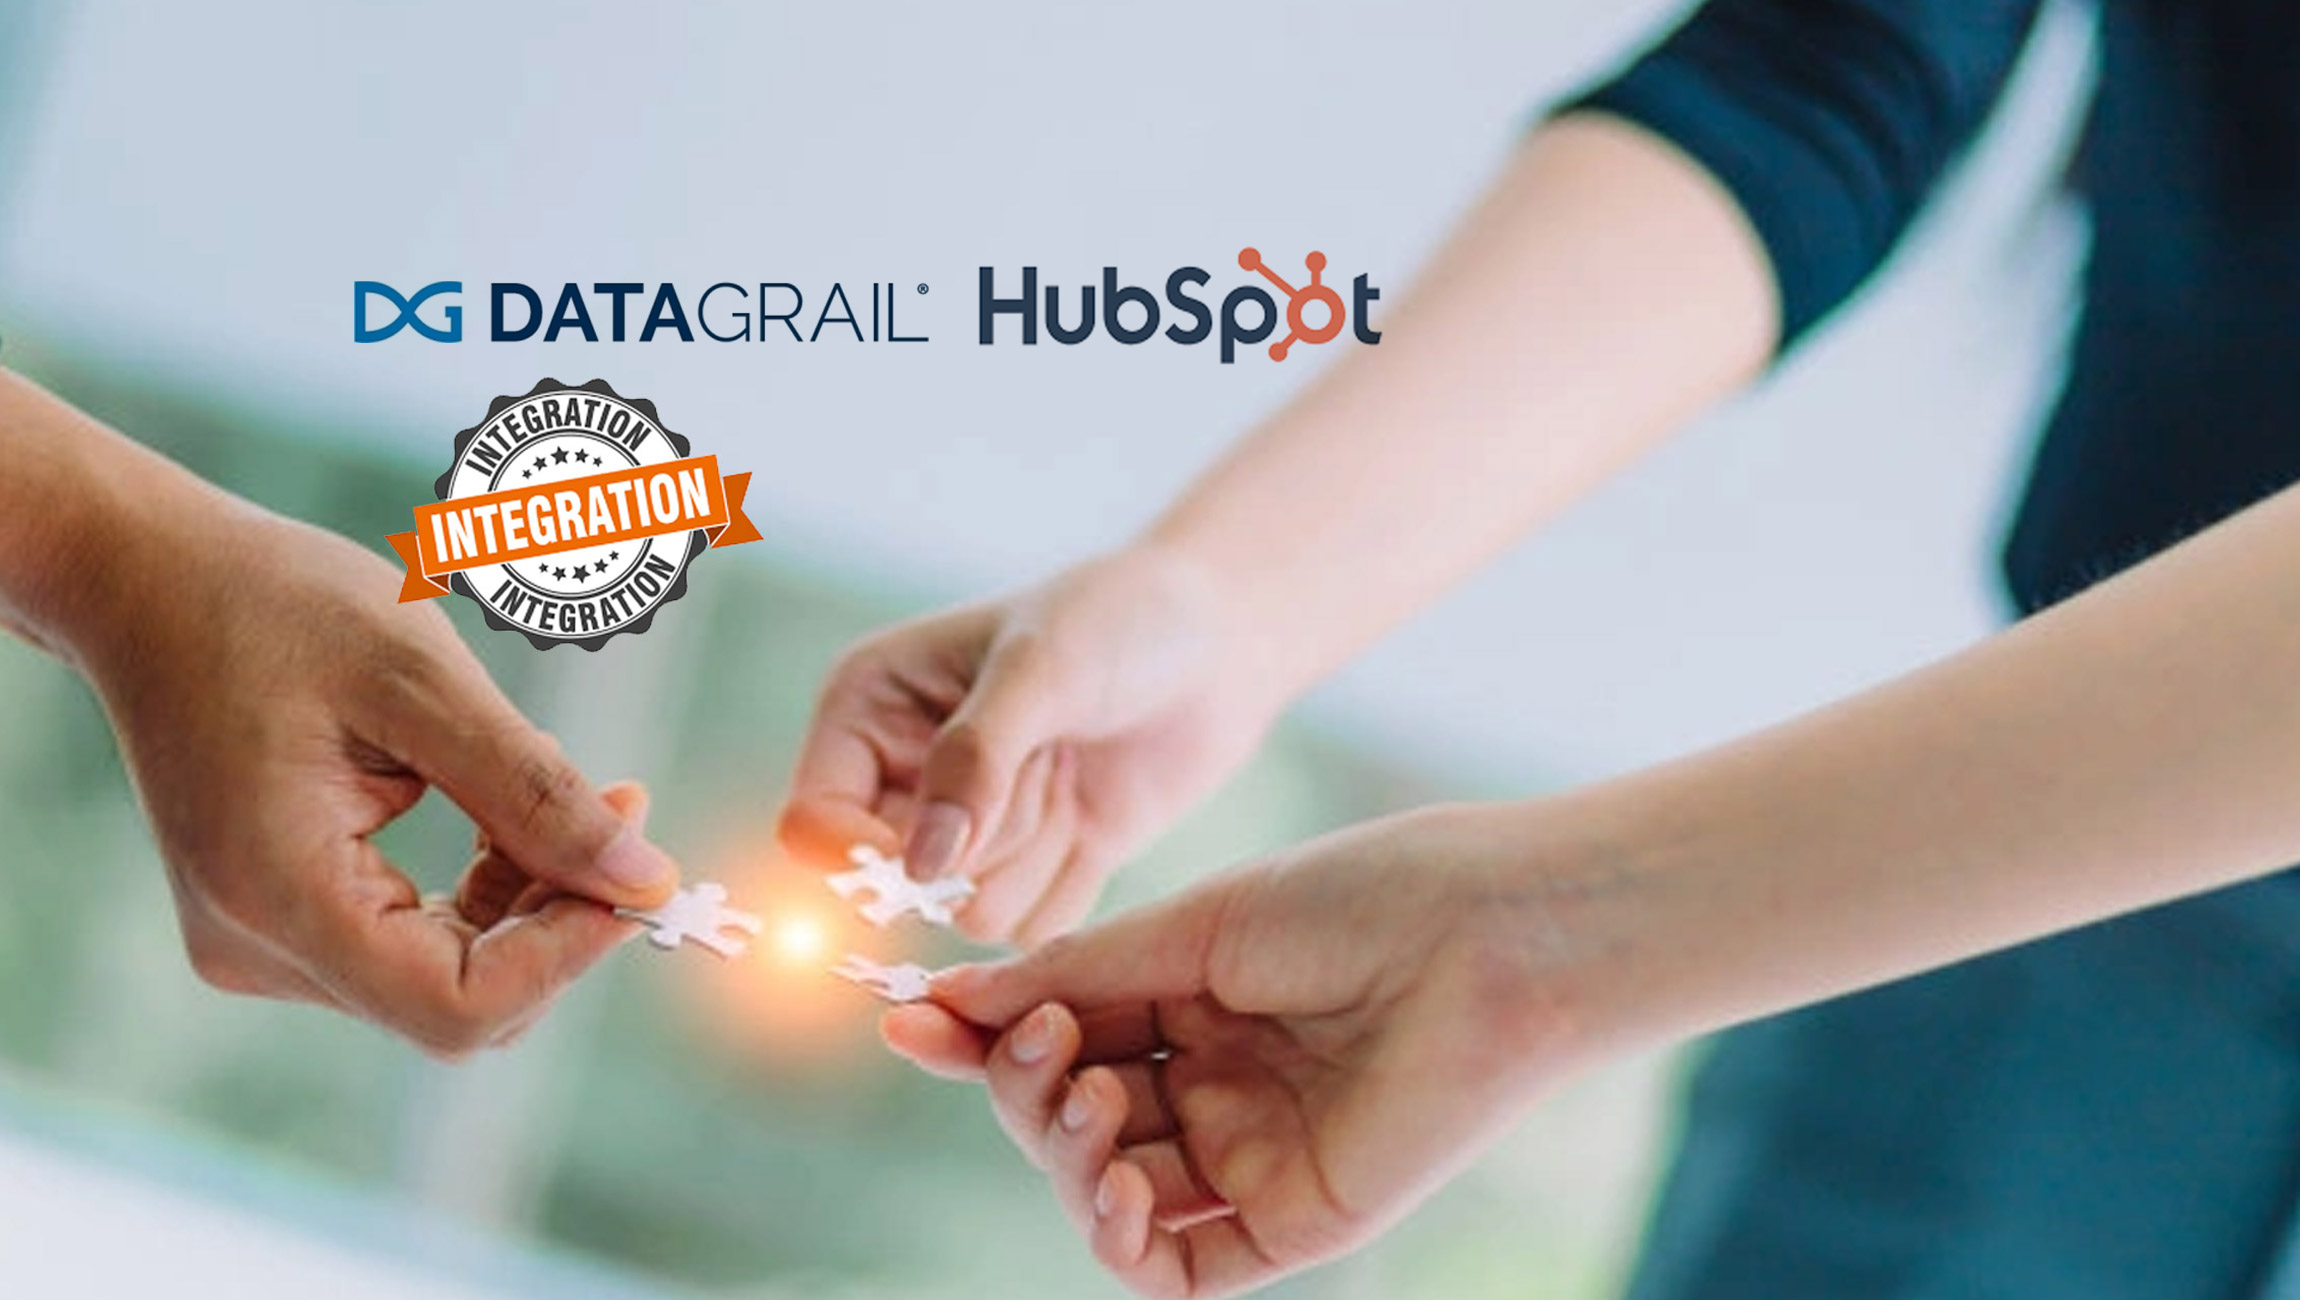 As Privacy Hits a Critical Juncture, DataGrail Integrates with HubSpot to Help Joint Customers Protect People's Privacy